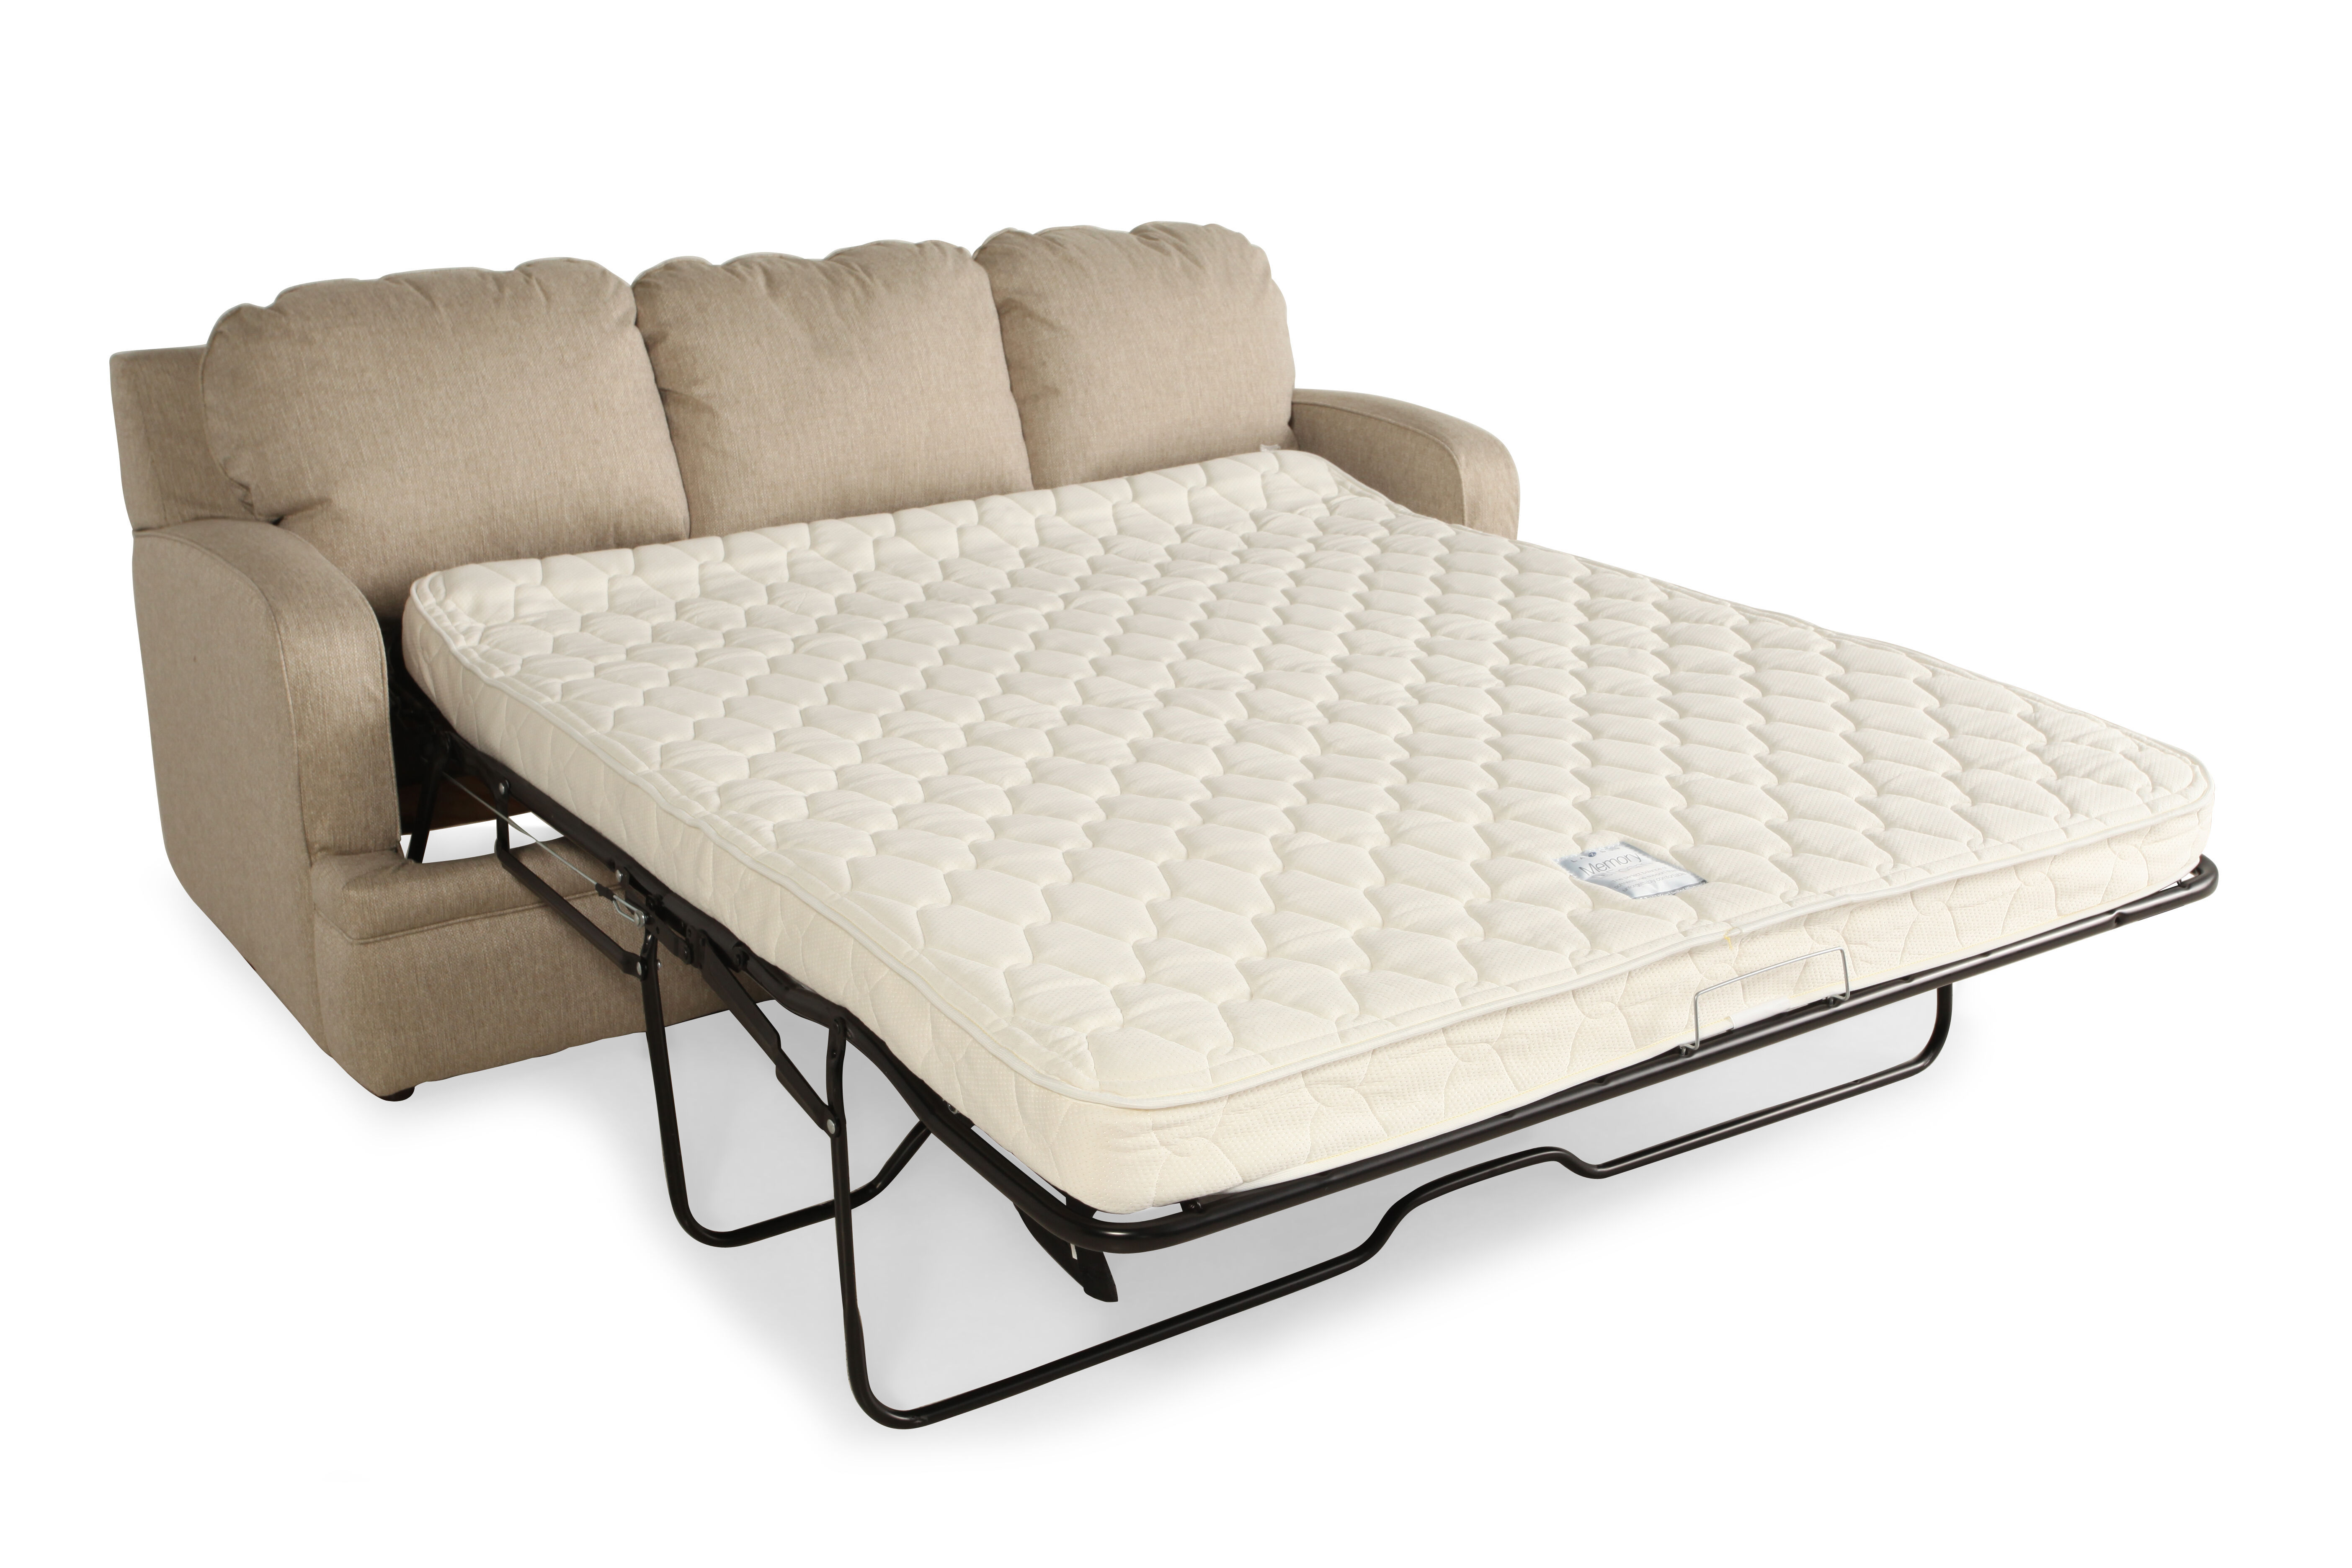 Replacement Air Mattress For Lazy Boy Sofa Bed Bedding Bed Linen